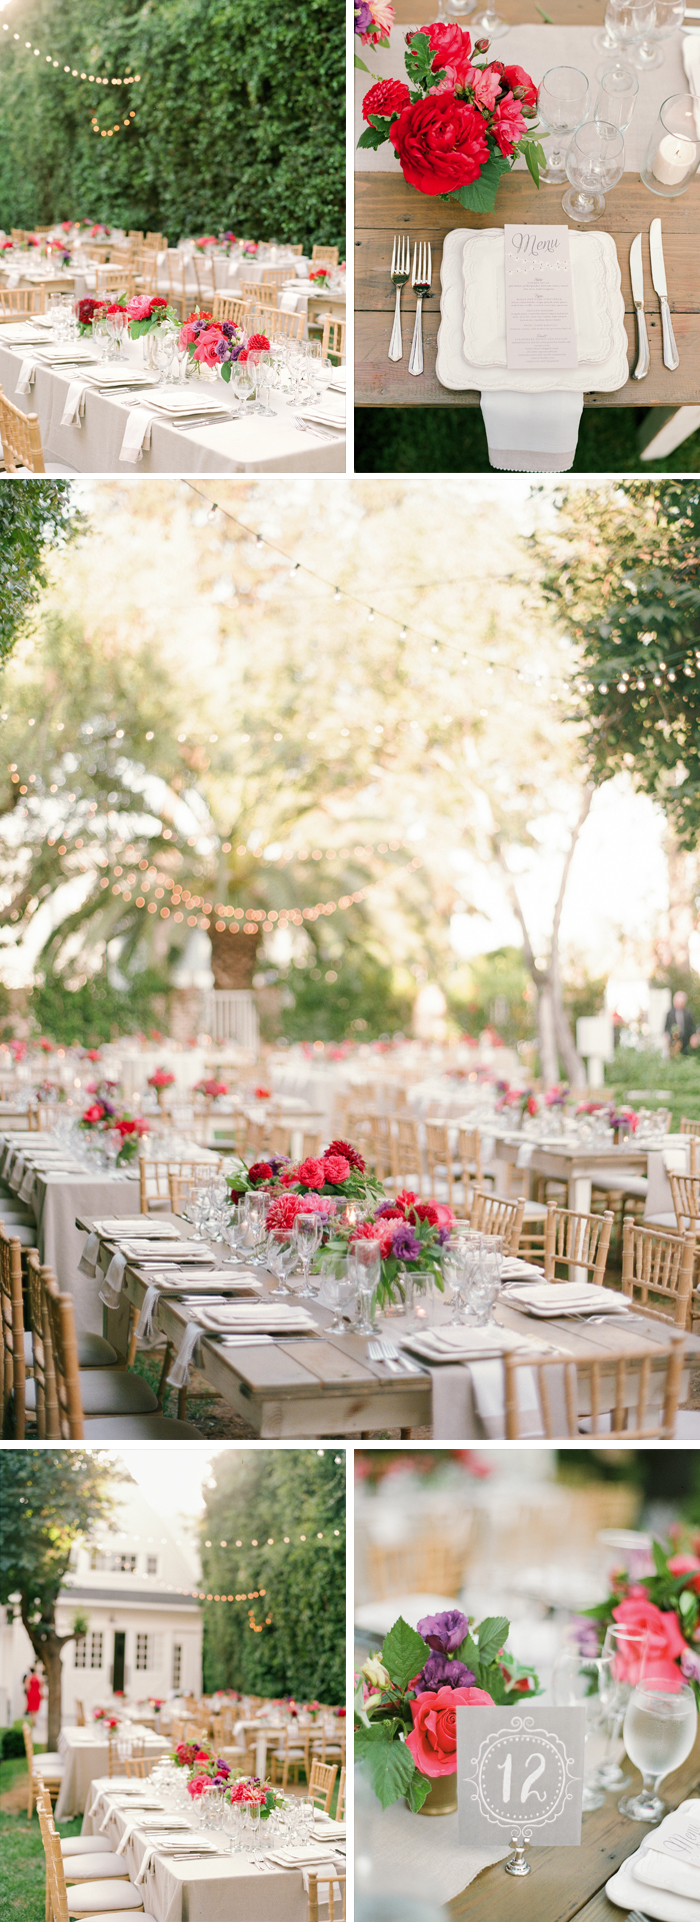 Sylvie-Gil-Lombardi-House-LosAngeles-colorful-wedding-outdoor-reception-white-barn-table-settings